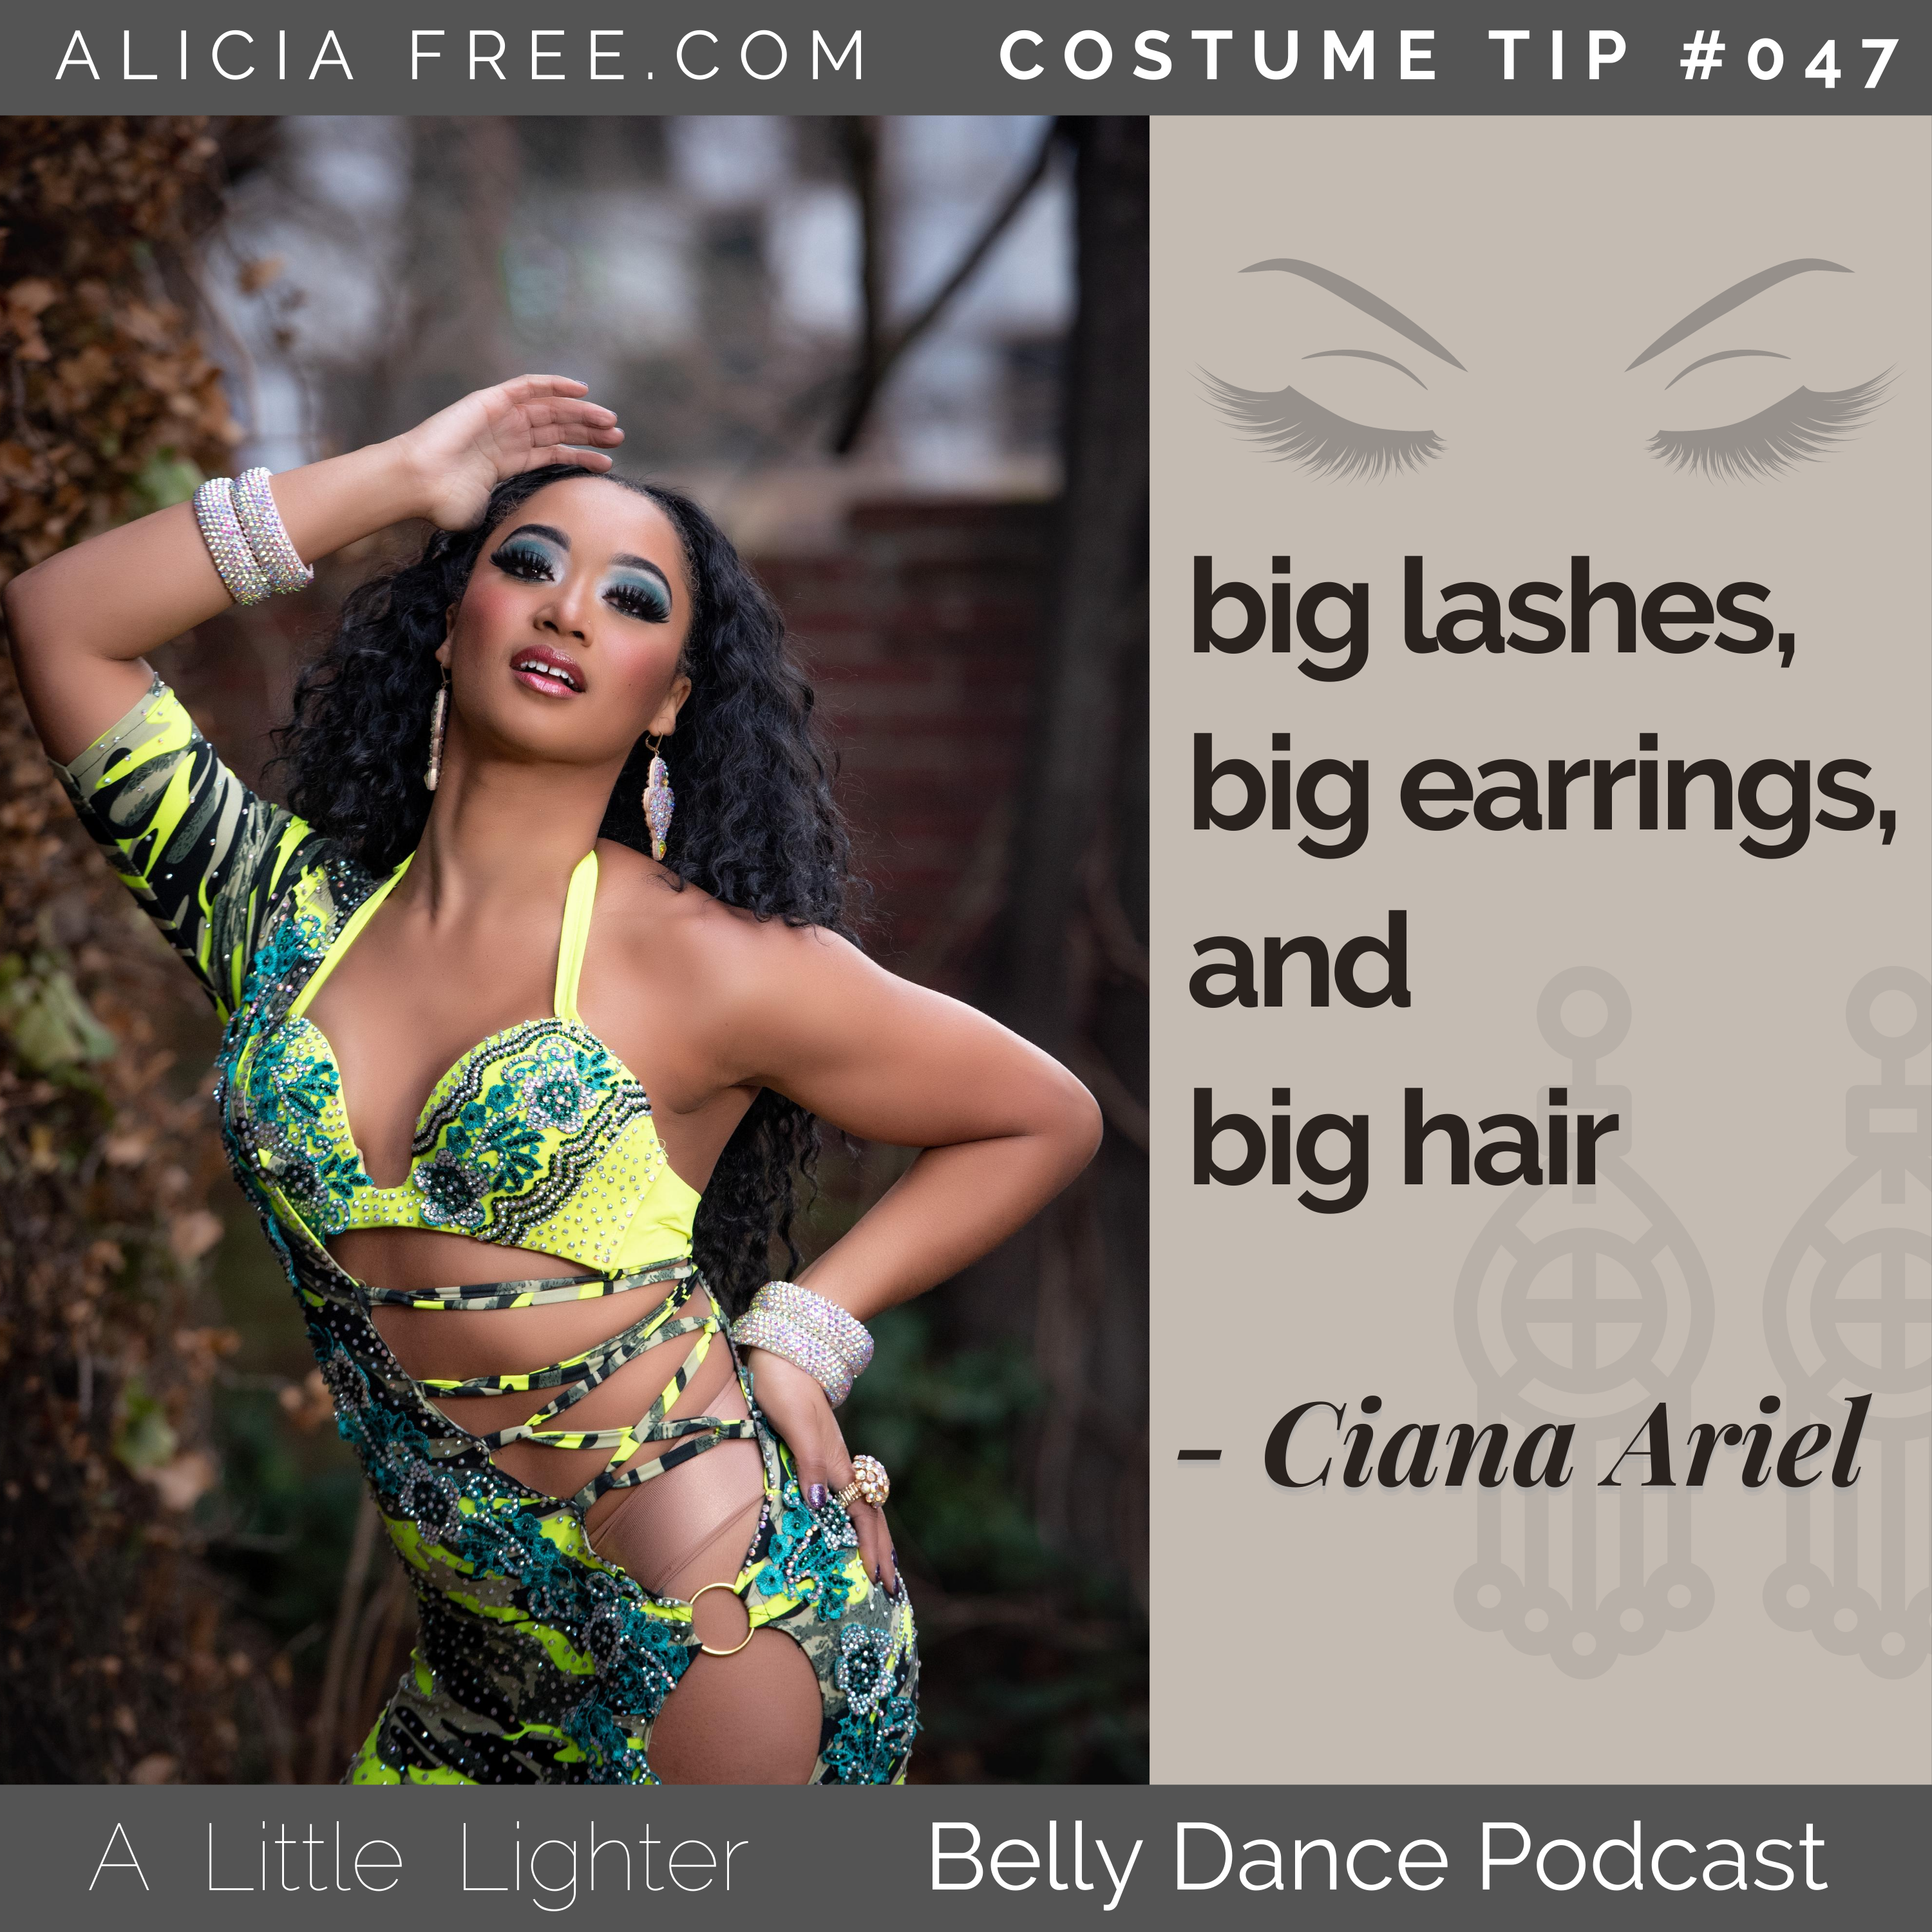 Belly Dance Podcast 047 Costume Tip